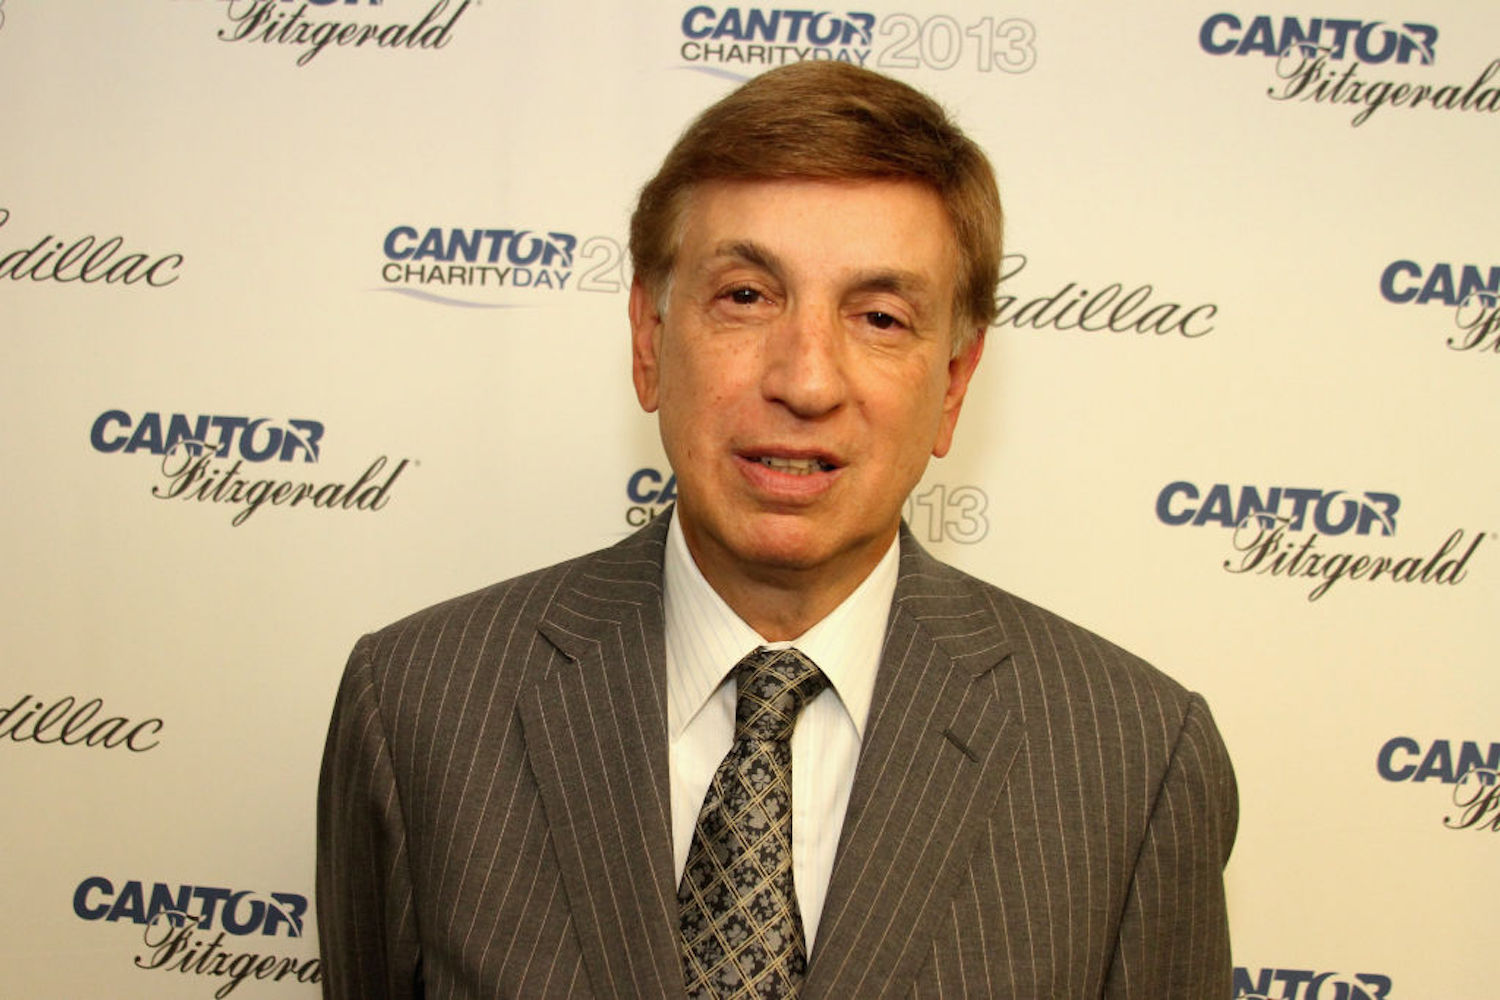 Marv Albert is still calling NBA games 23 years after he pled guilty to assault and battery in bizarre sex case.